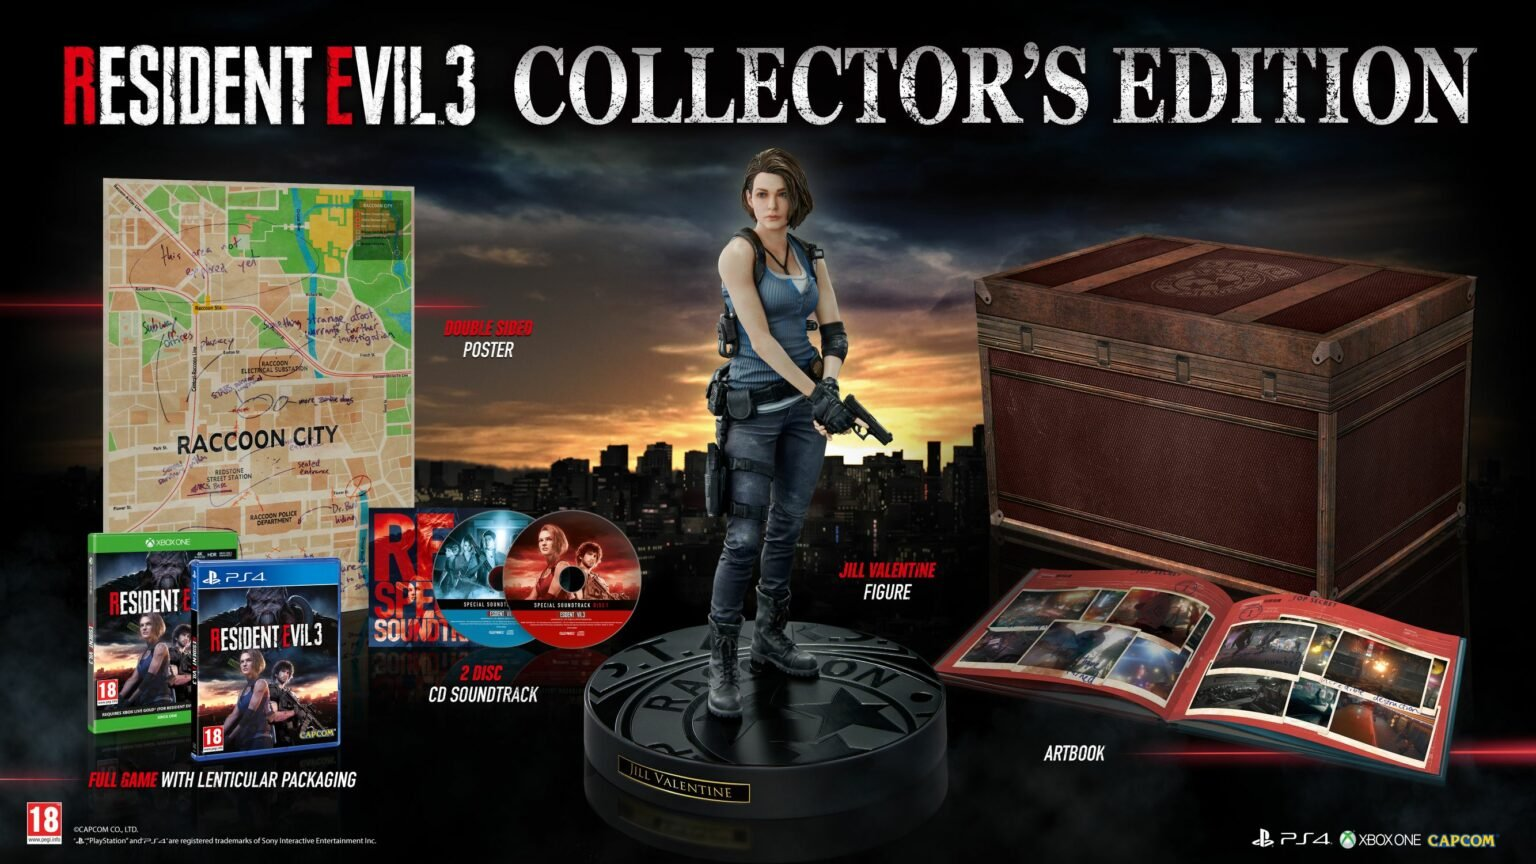 Resident Evil 3 gets European Collector's Edition with soundtrack